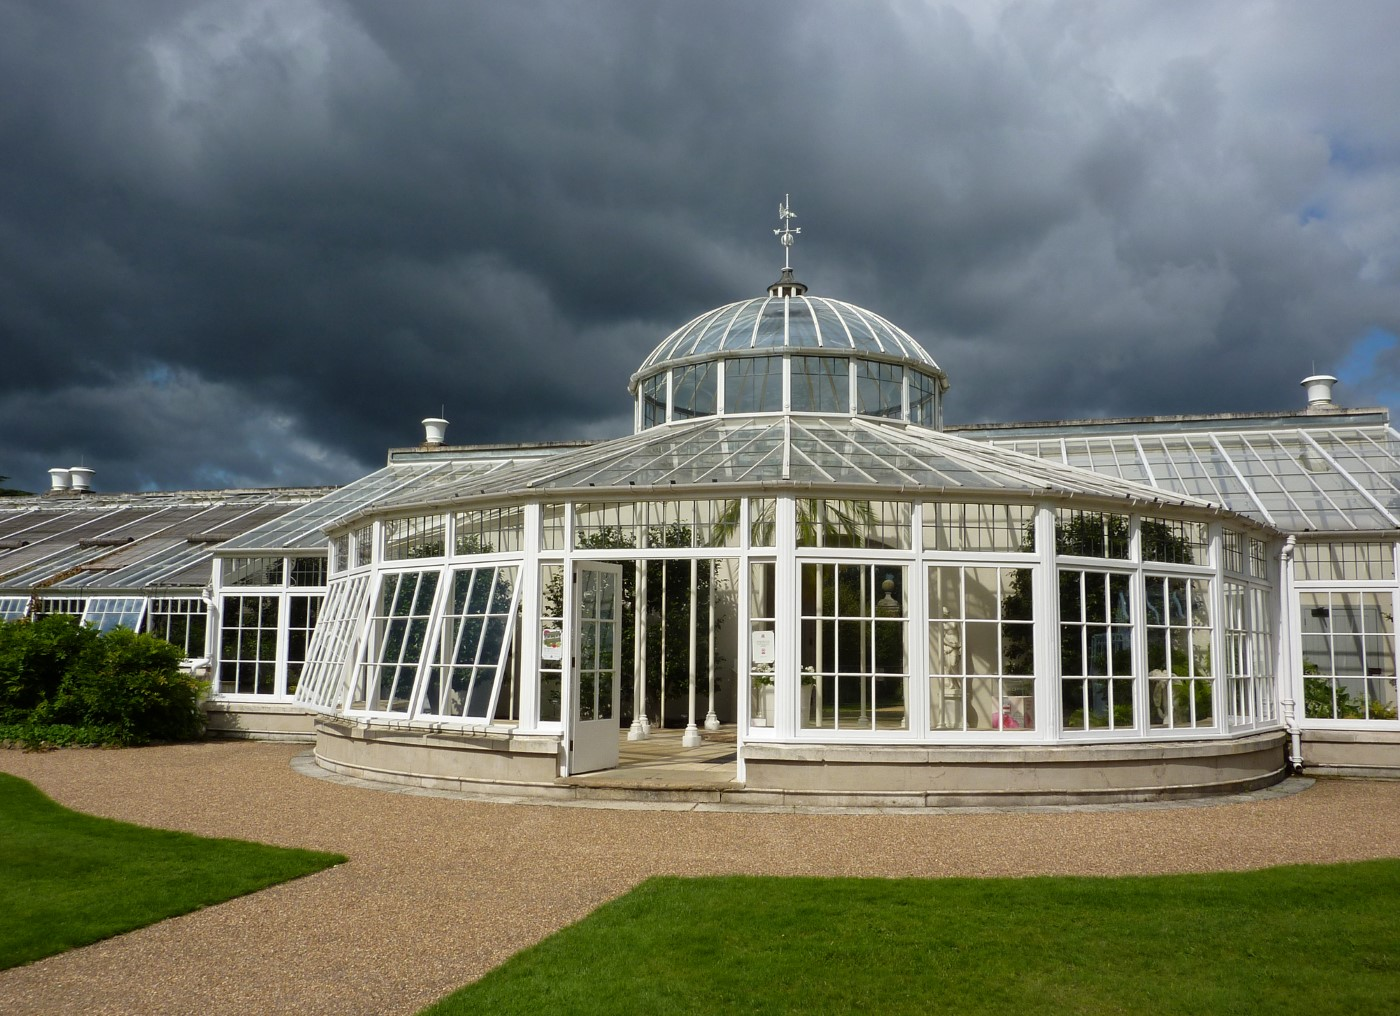 STORM CLOUDS AT CHISWICK by Jim Chown